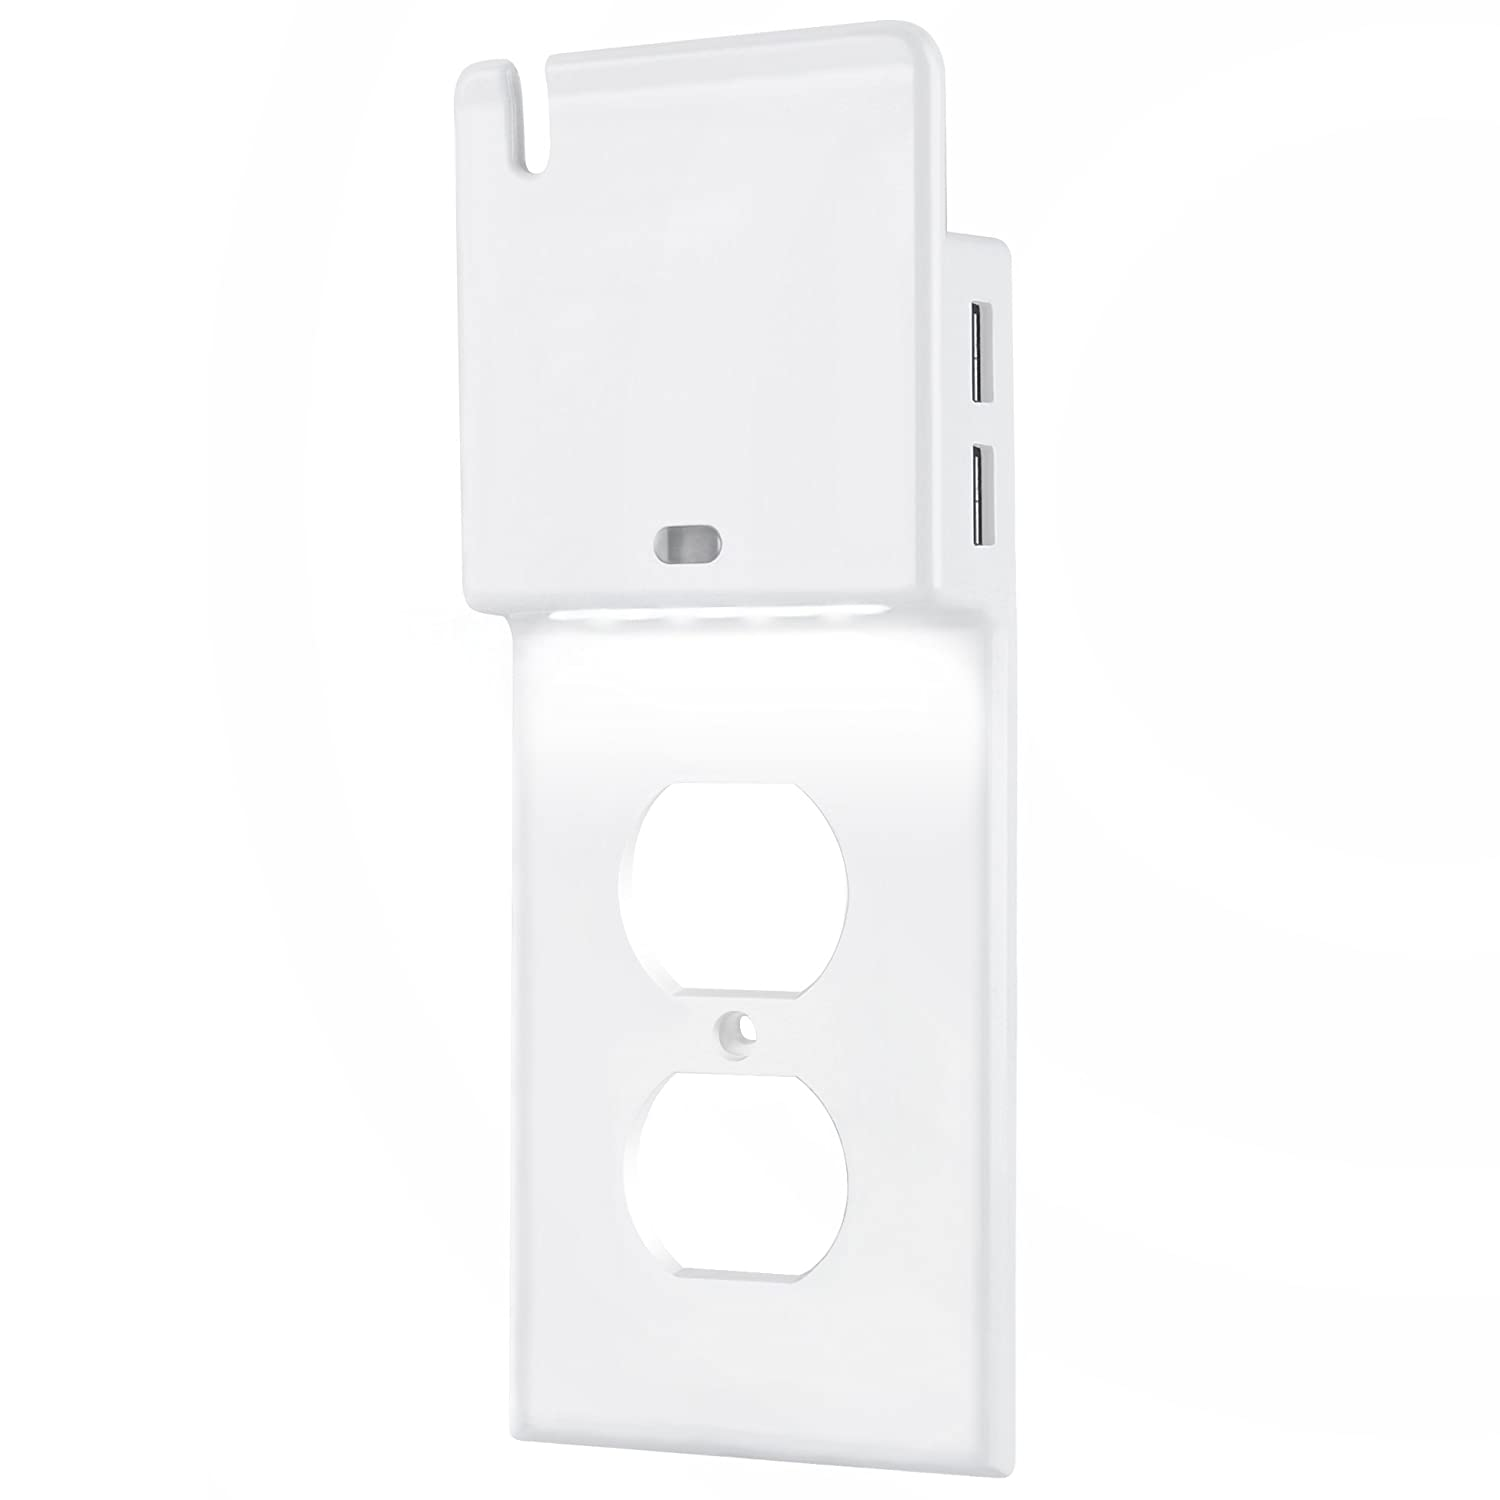 ELECTEK Advanced Wall Plate for Duplex Receptacle Outlet, with White LED Night Light, Dual USB Charging Ports (Total 3.1Amp) and Phone Holder, Easy Installation, White